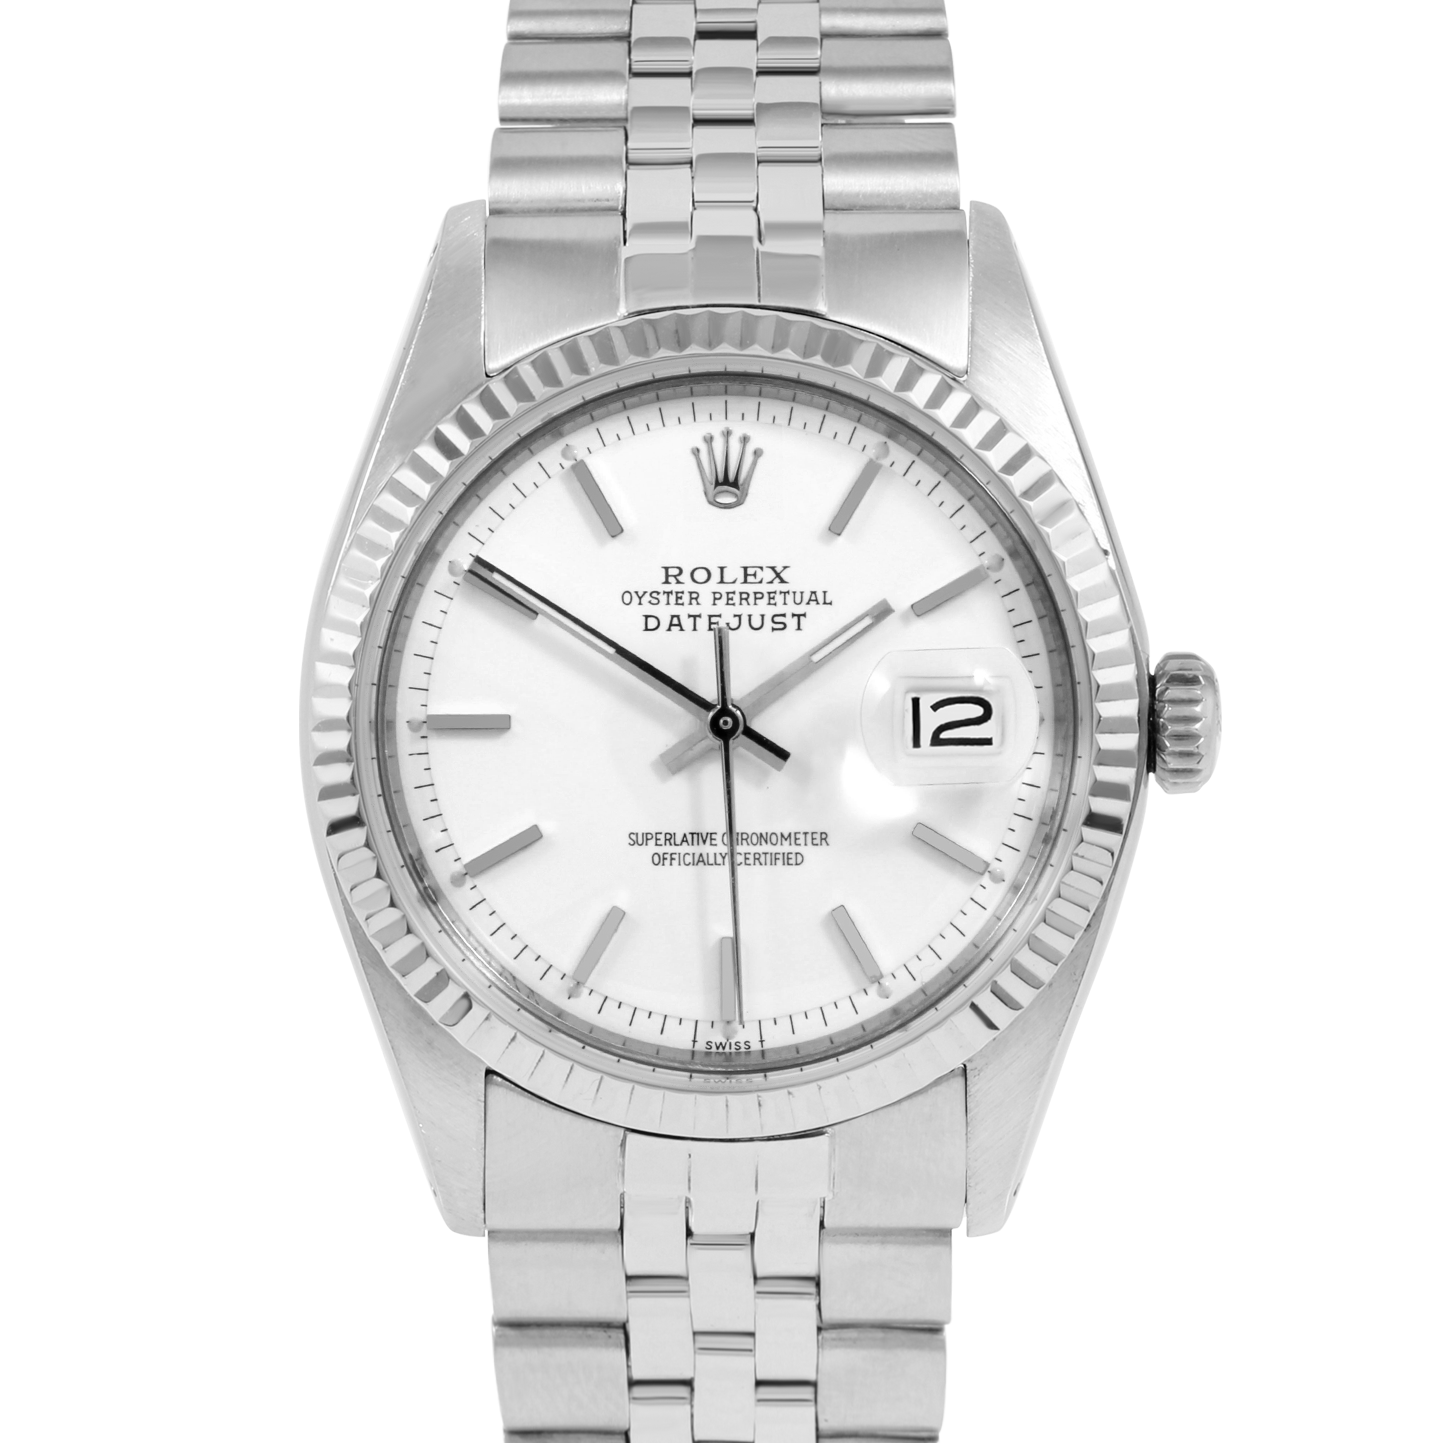 Rolex Vintage Datejust 1601 White Stick Dial - Stainless Steel - Fluted Bezel On A Jubilee Band - Pre-Owned